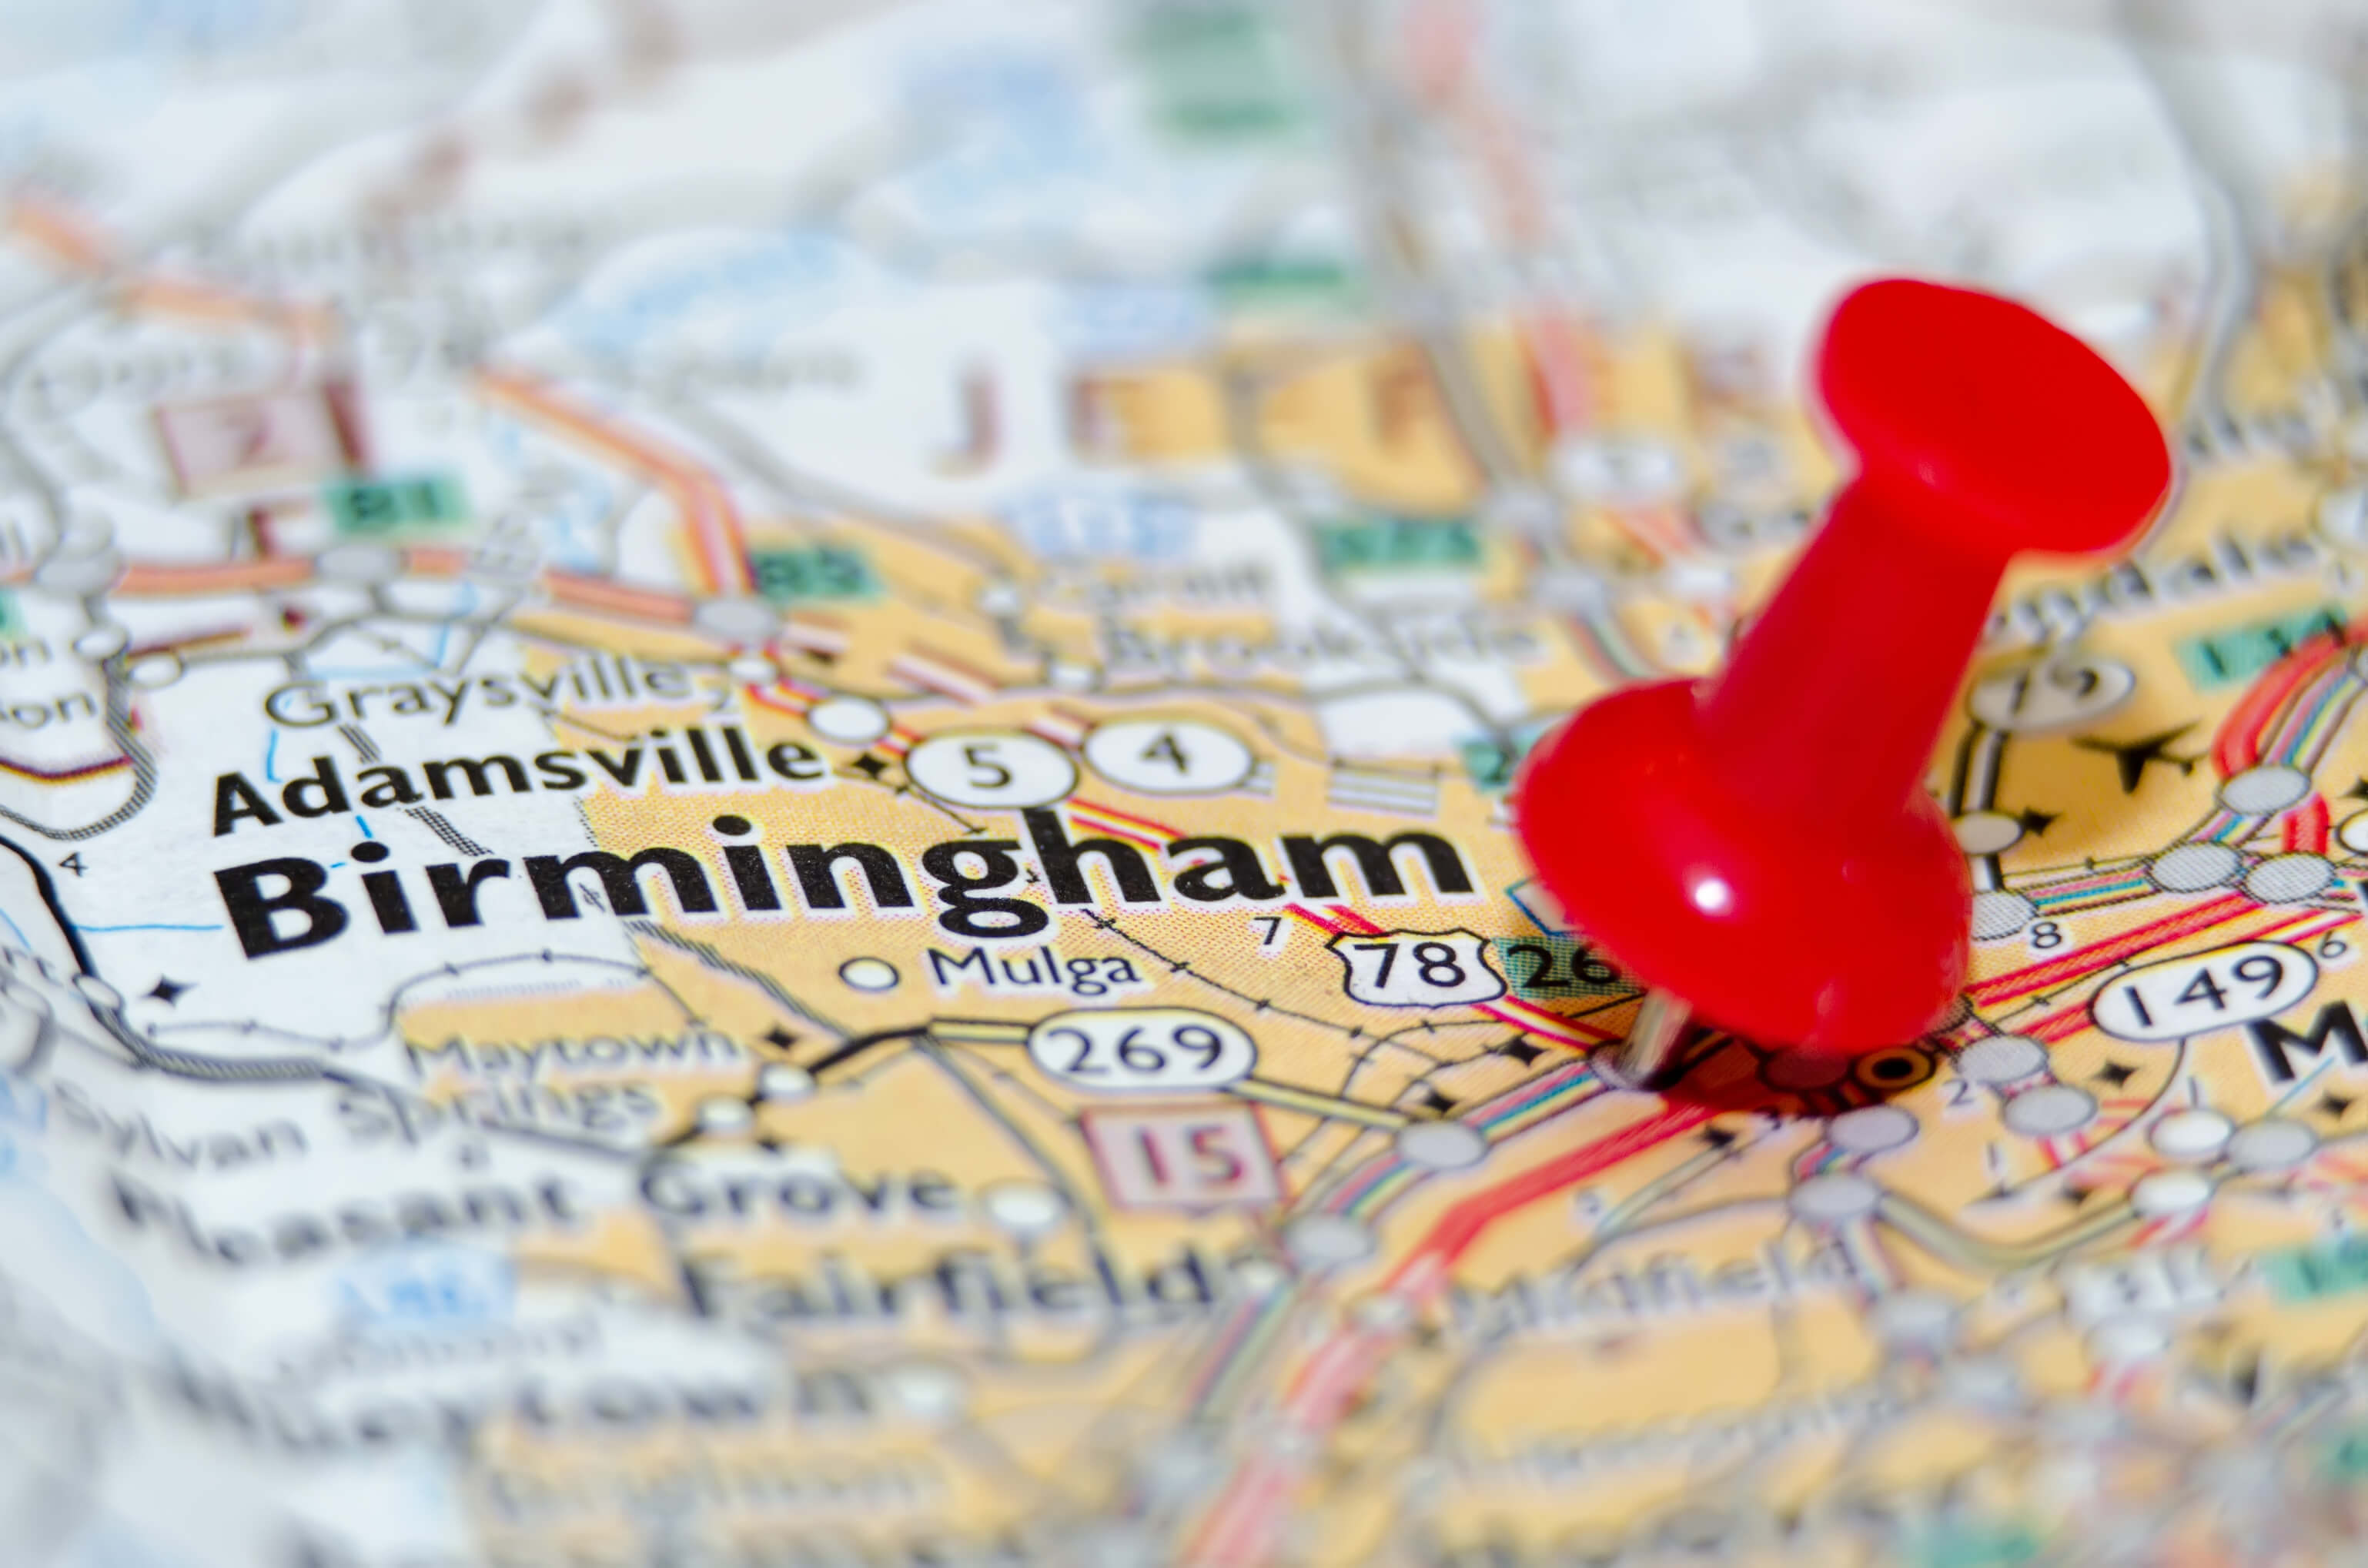 Map marks locations of enrolling clinical trials in Birmingham